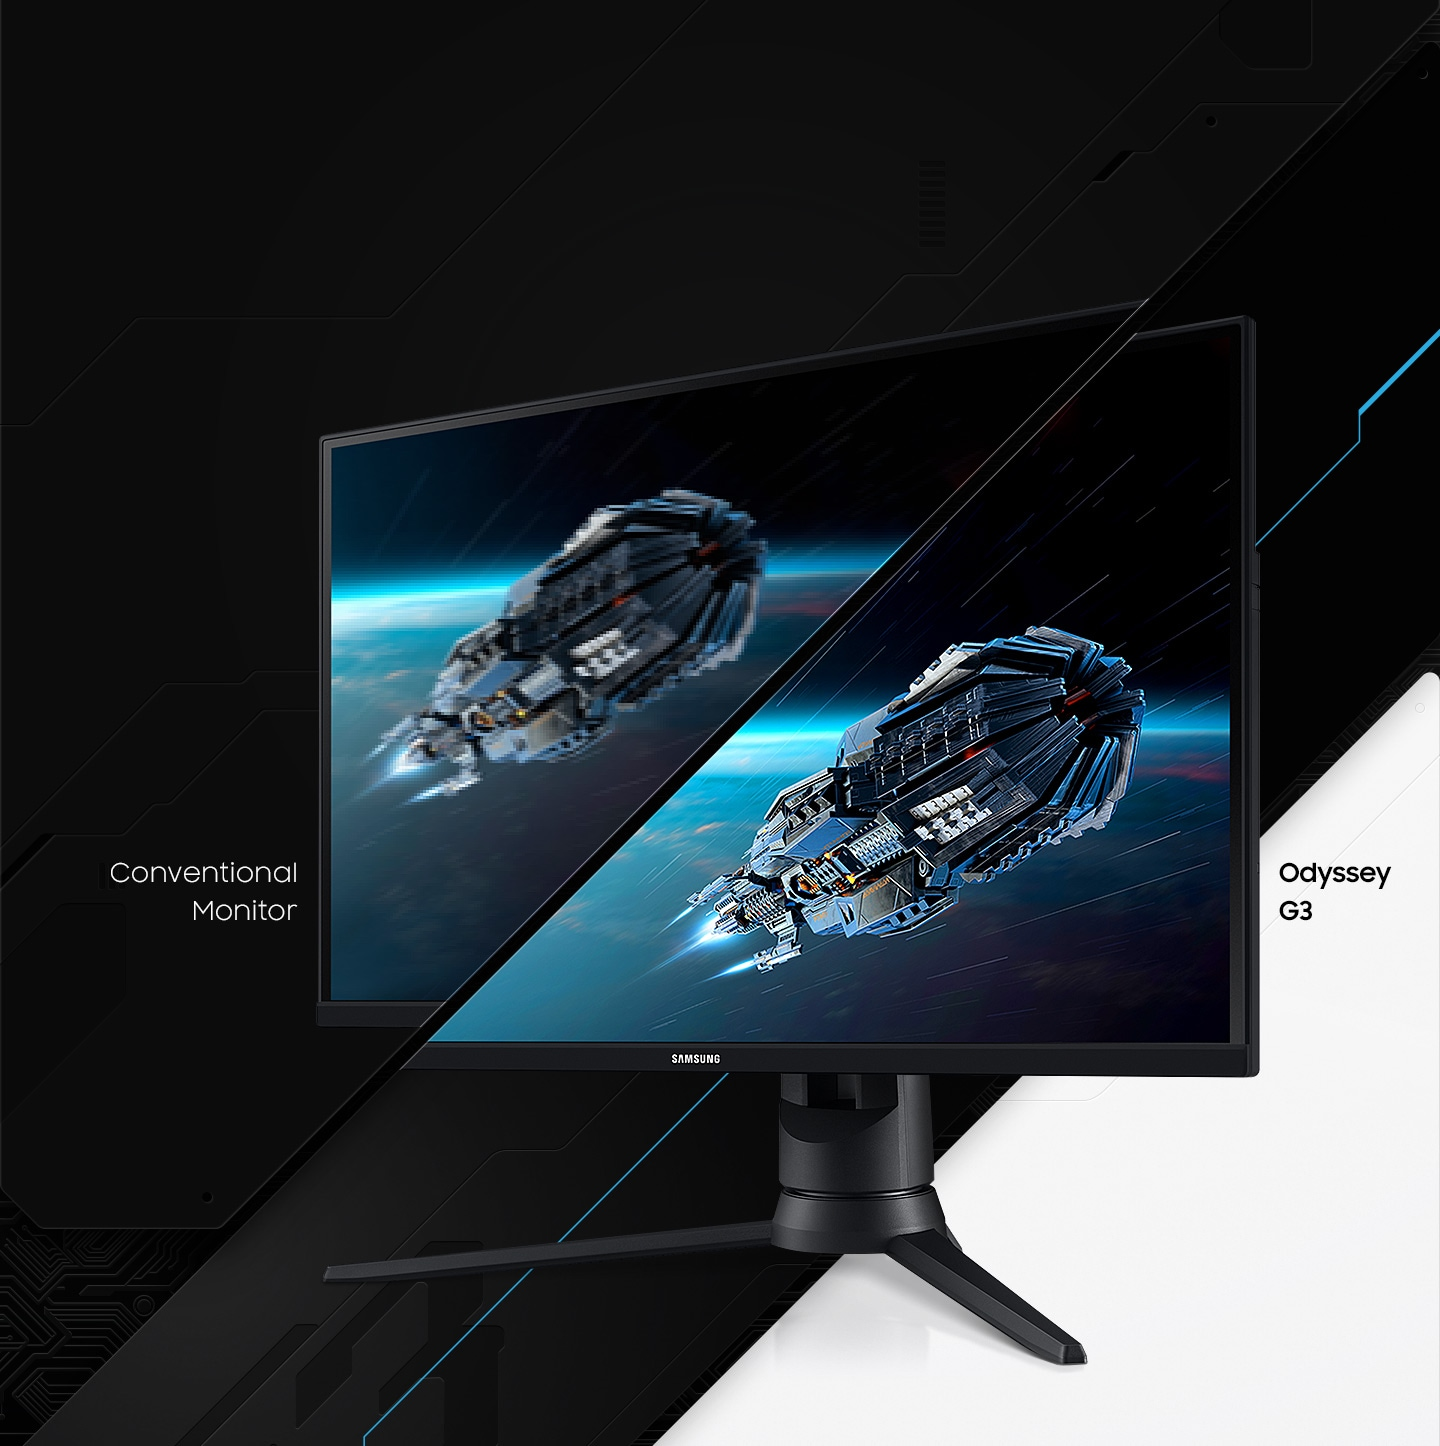 The response time of Odyssey G3 and the conventional monitor are compared by showing the blurry picture on the conventional